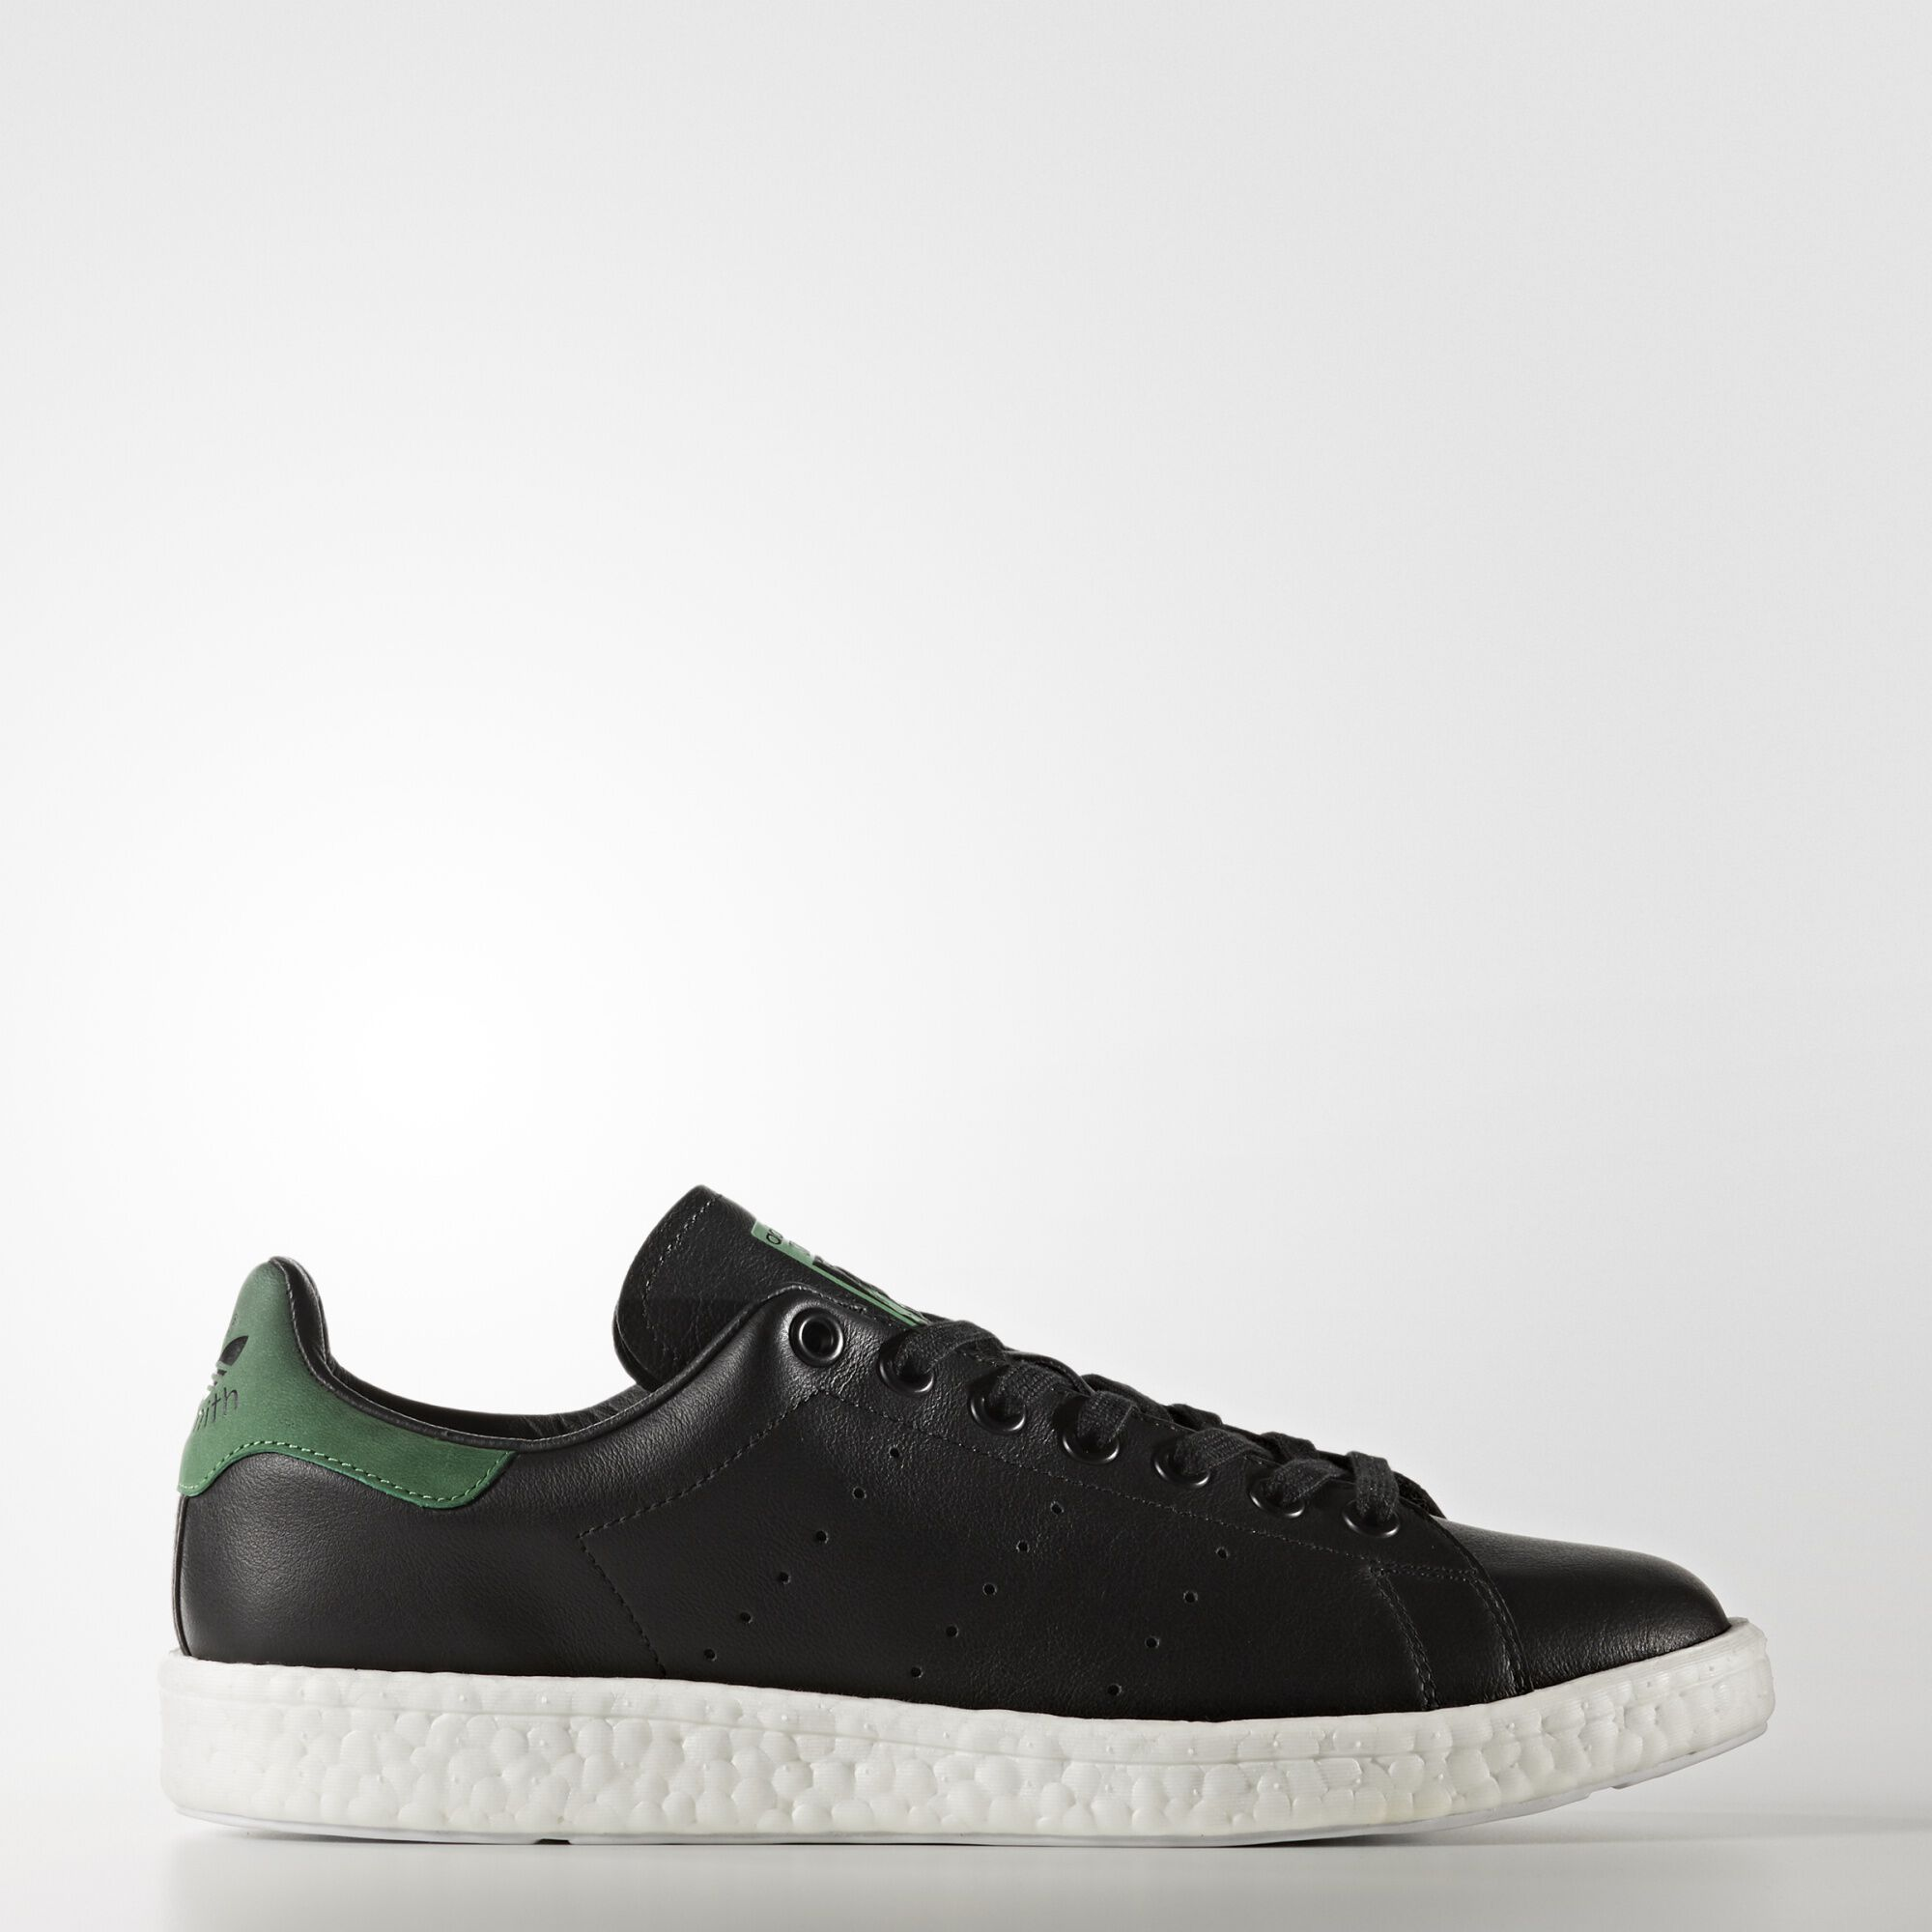 Stan Smith Limited Edition Shoes